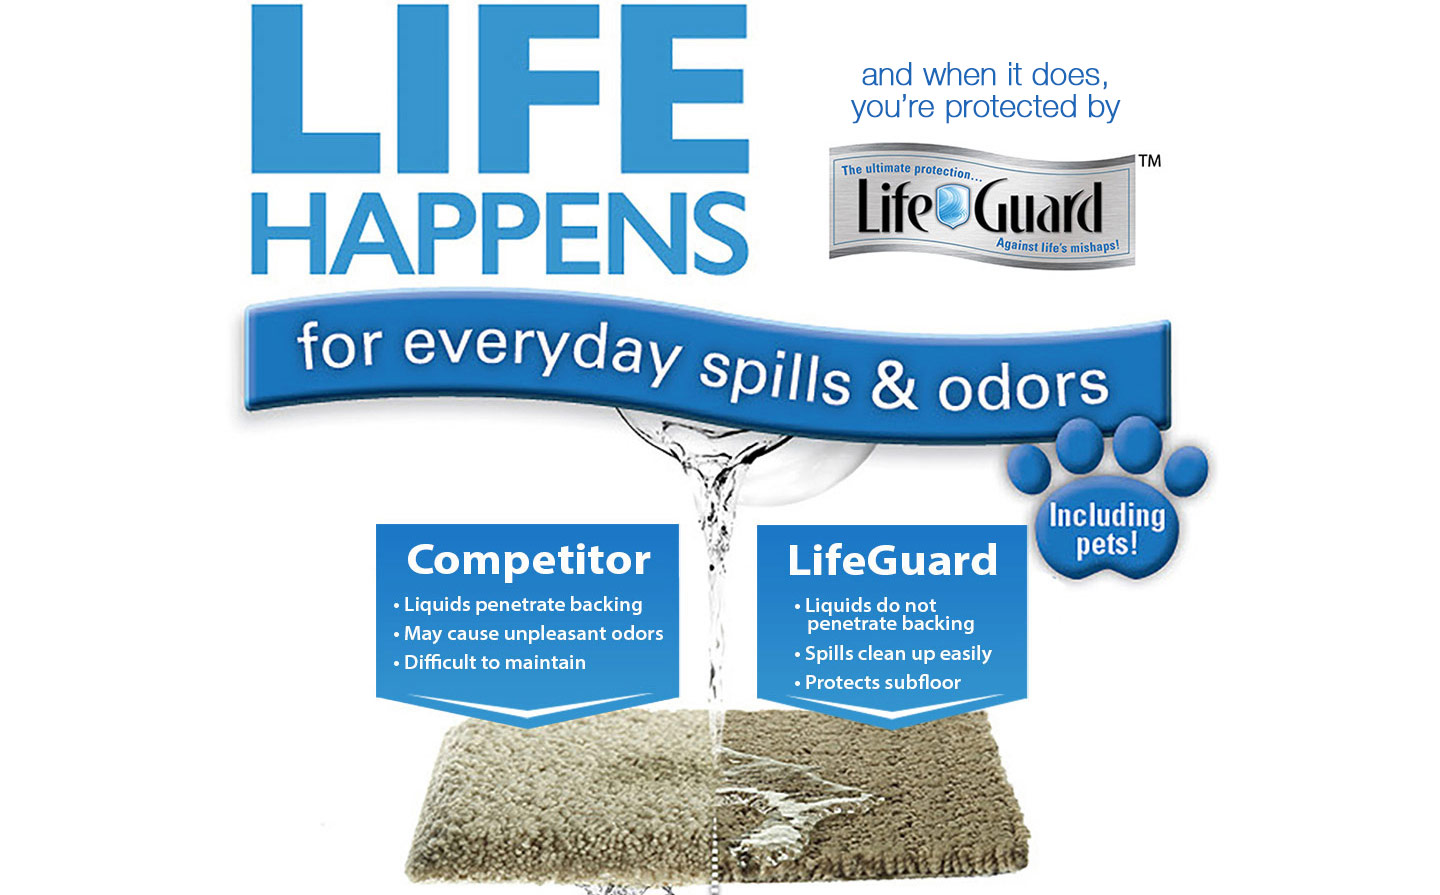 Life Happens and when it does you're protected by LifeGuard - for everyday spills & odors